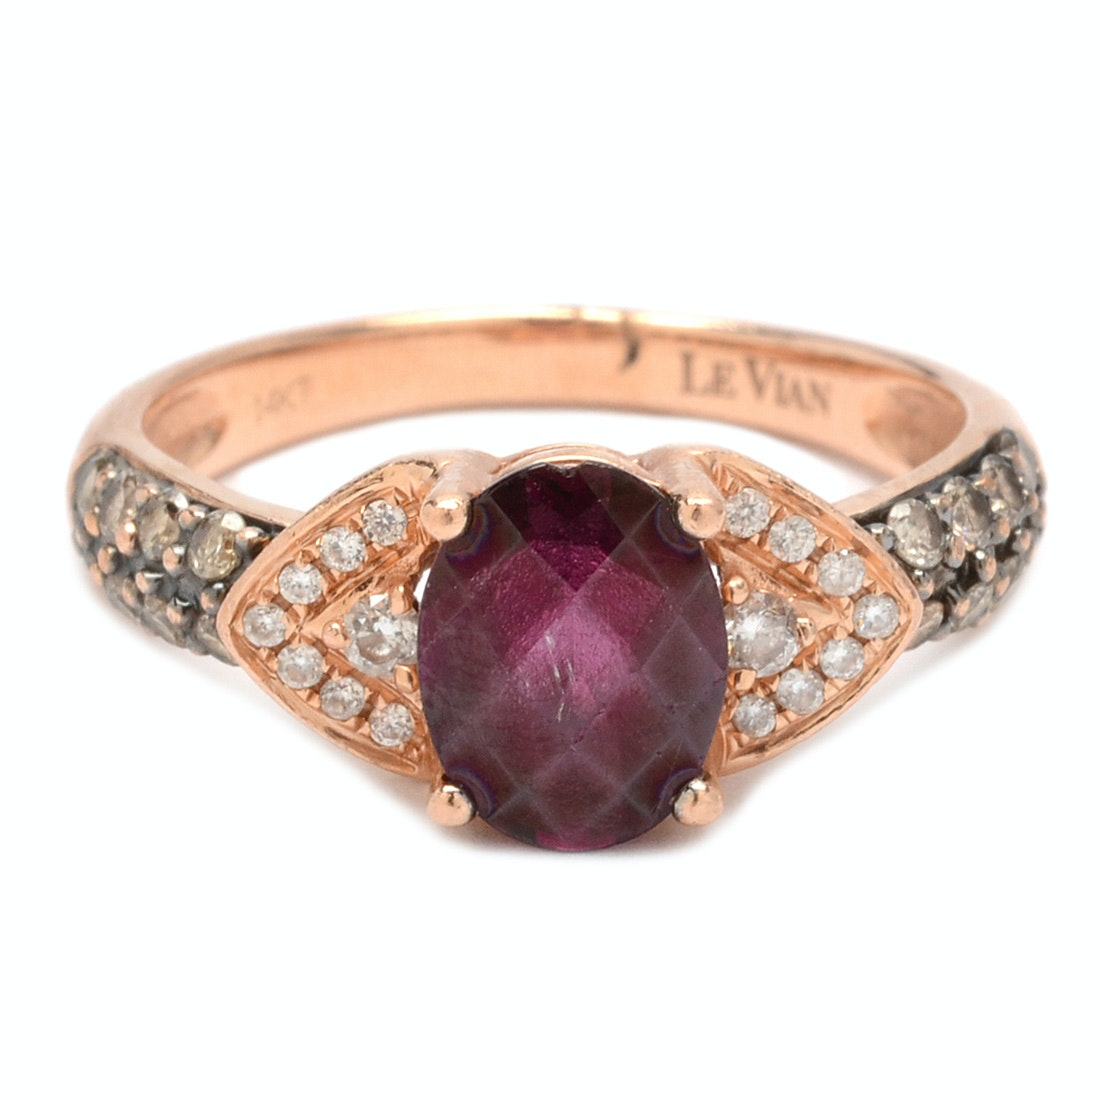 LeVian 14K Rose Gold Rhodolite Garnet and Diamond Ring